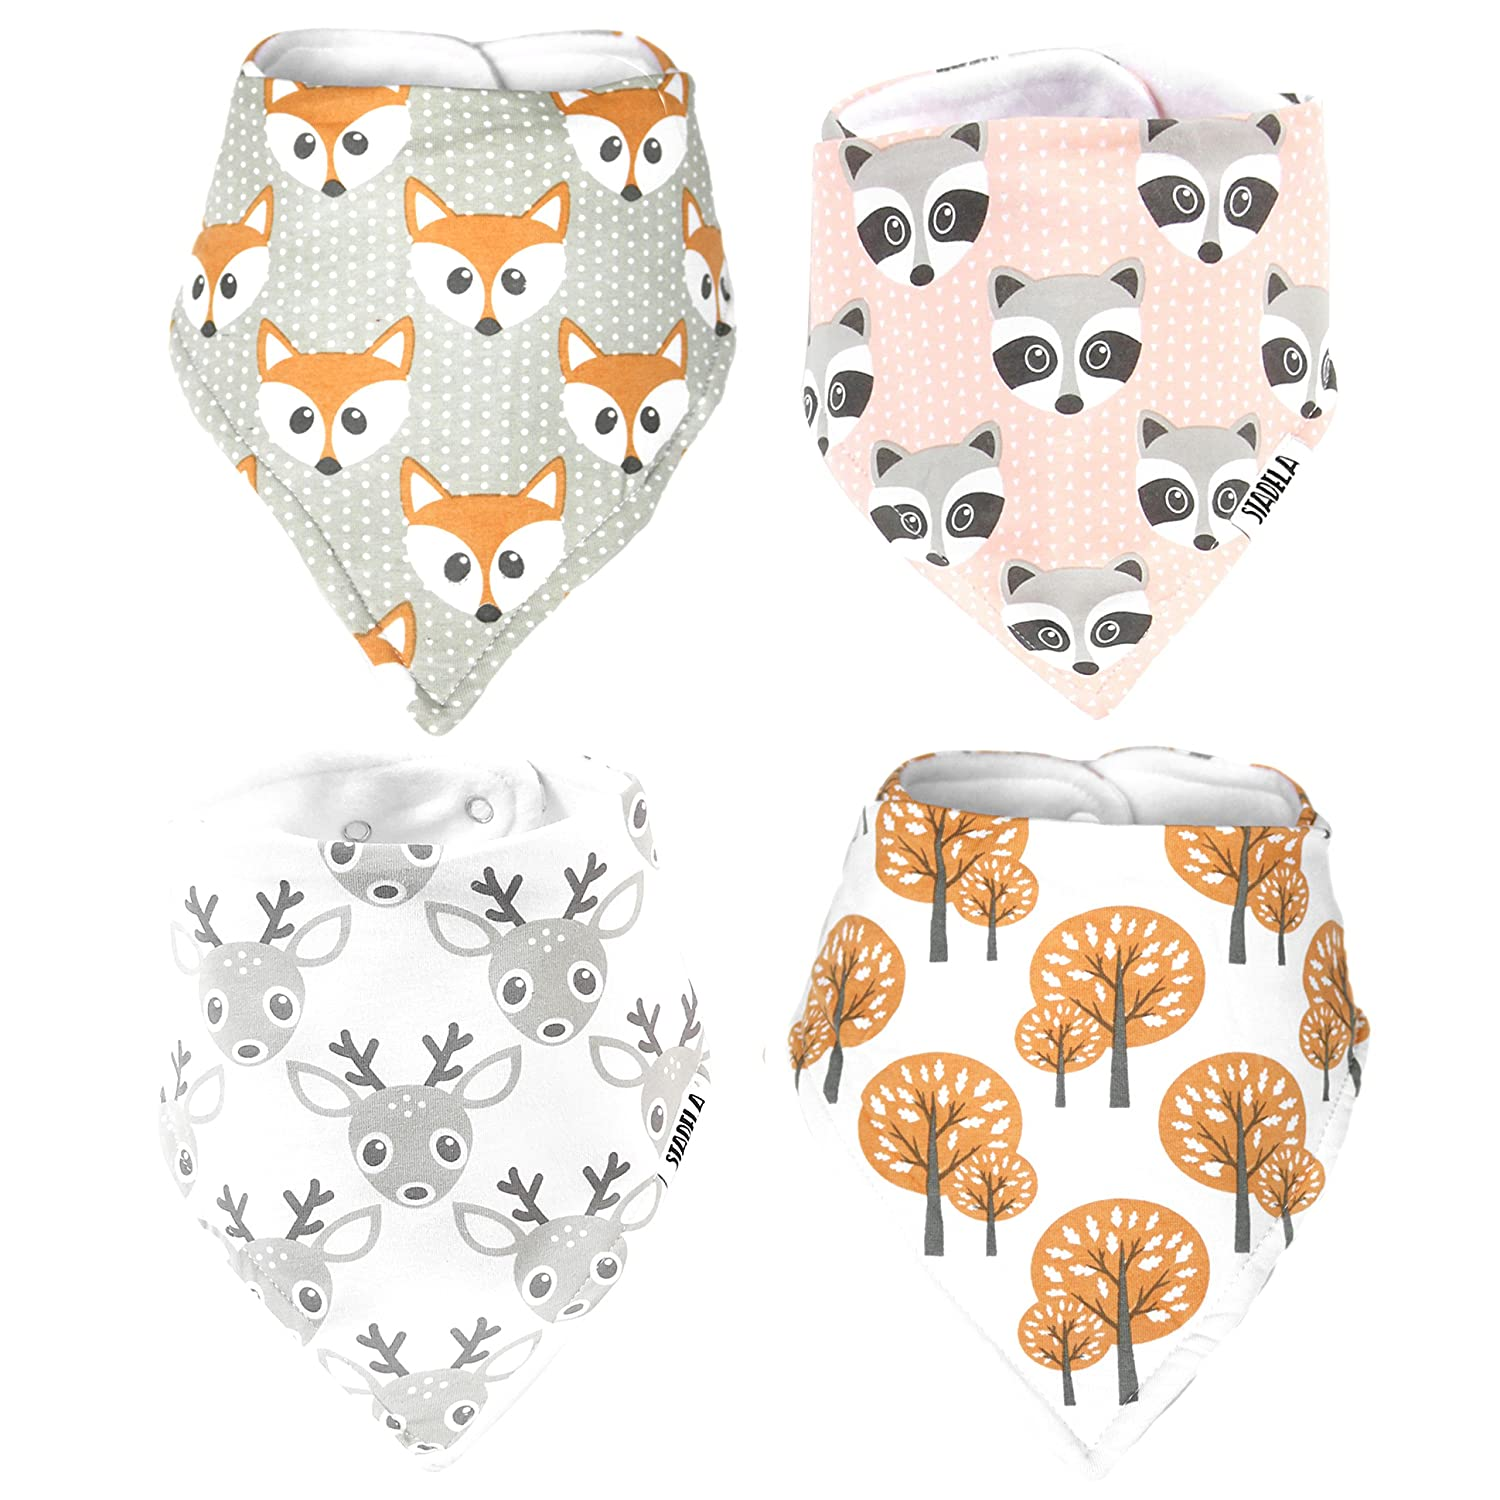 Stadela Baby Adjustable Bandana Drool Bibs for Drooling and Teething Nursery Burp Cloths 4 Pack Unisex Baby Shower Gift Set for Girl and Boy – Woodland Adventure Forest Animal Fox Deer Raccoon Tree